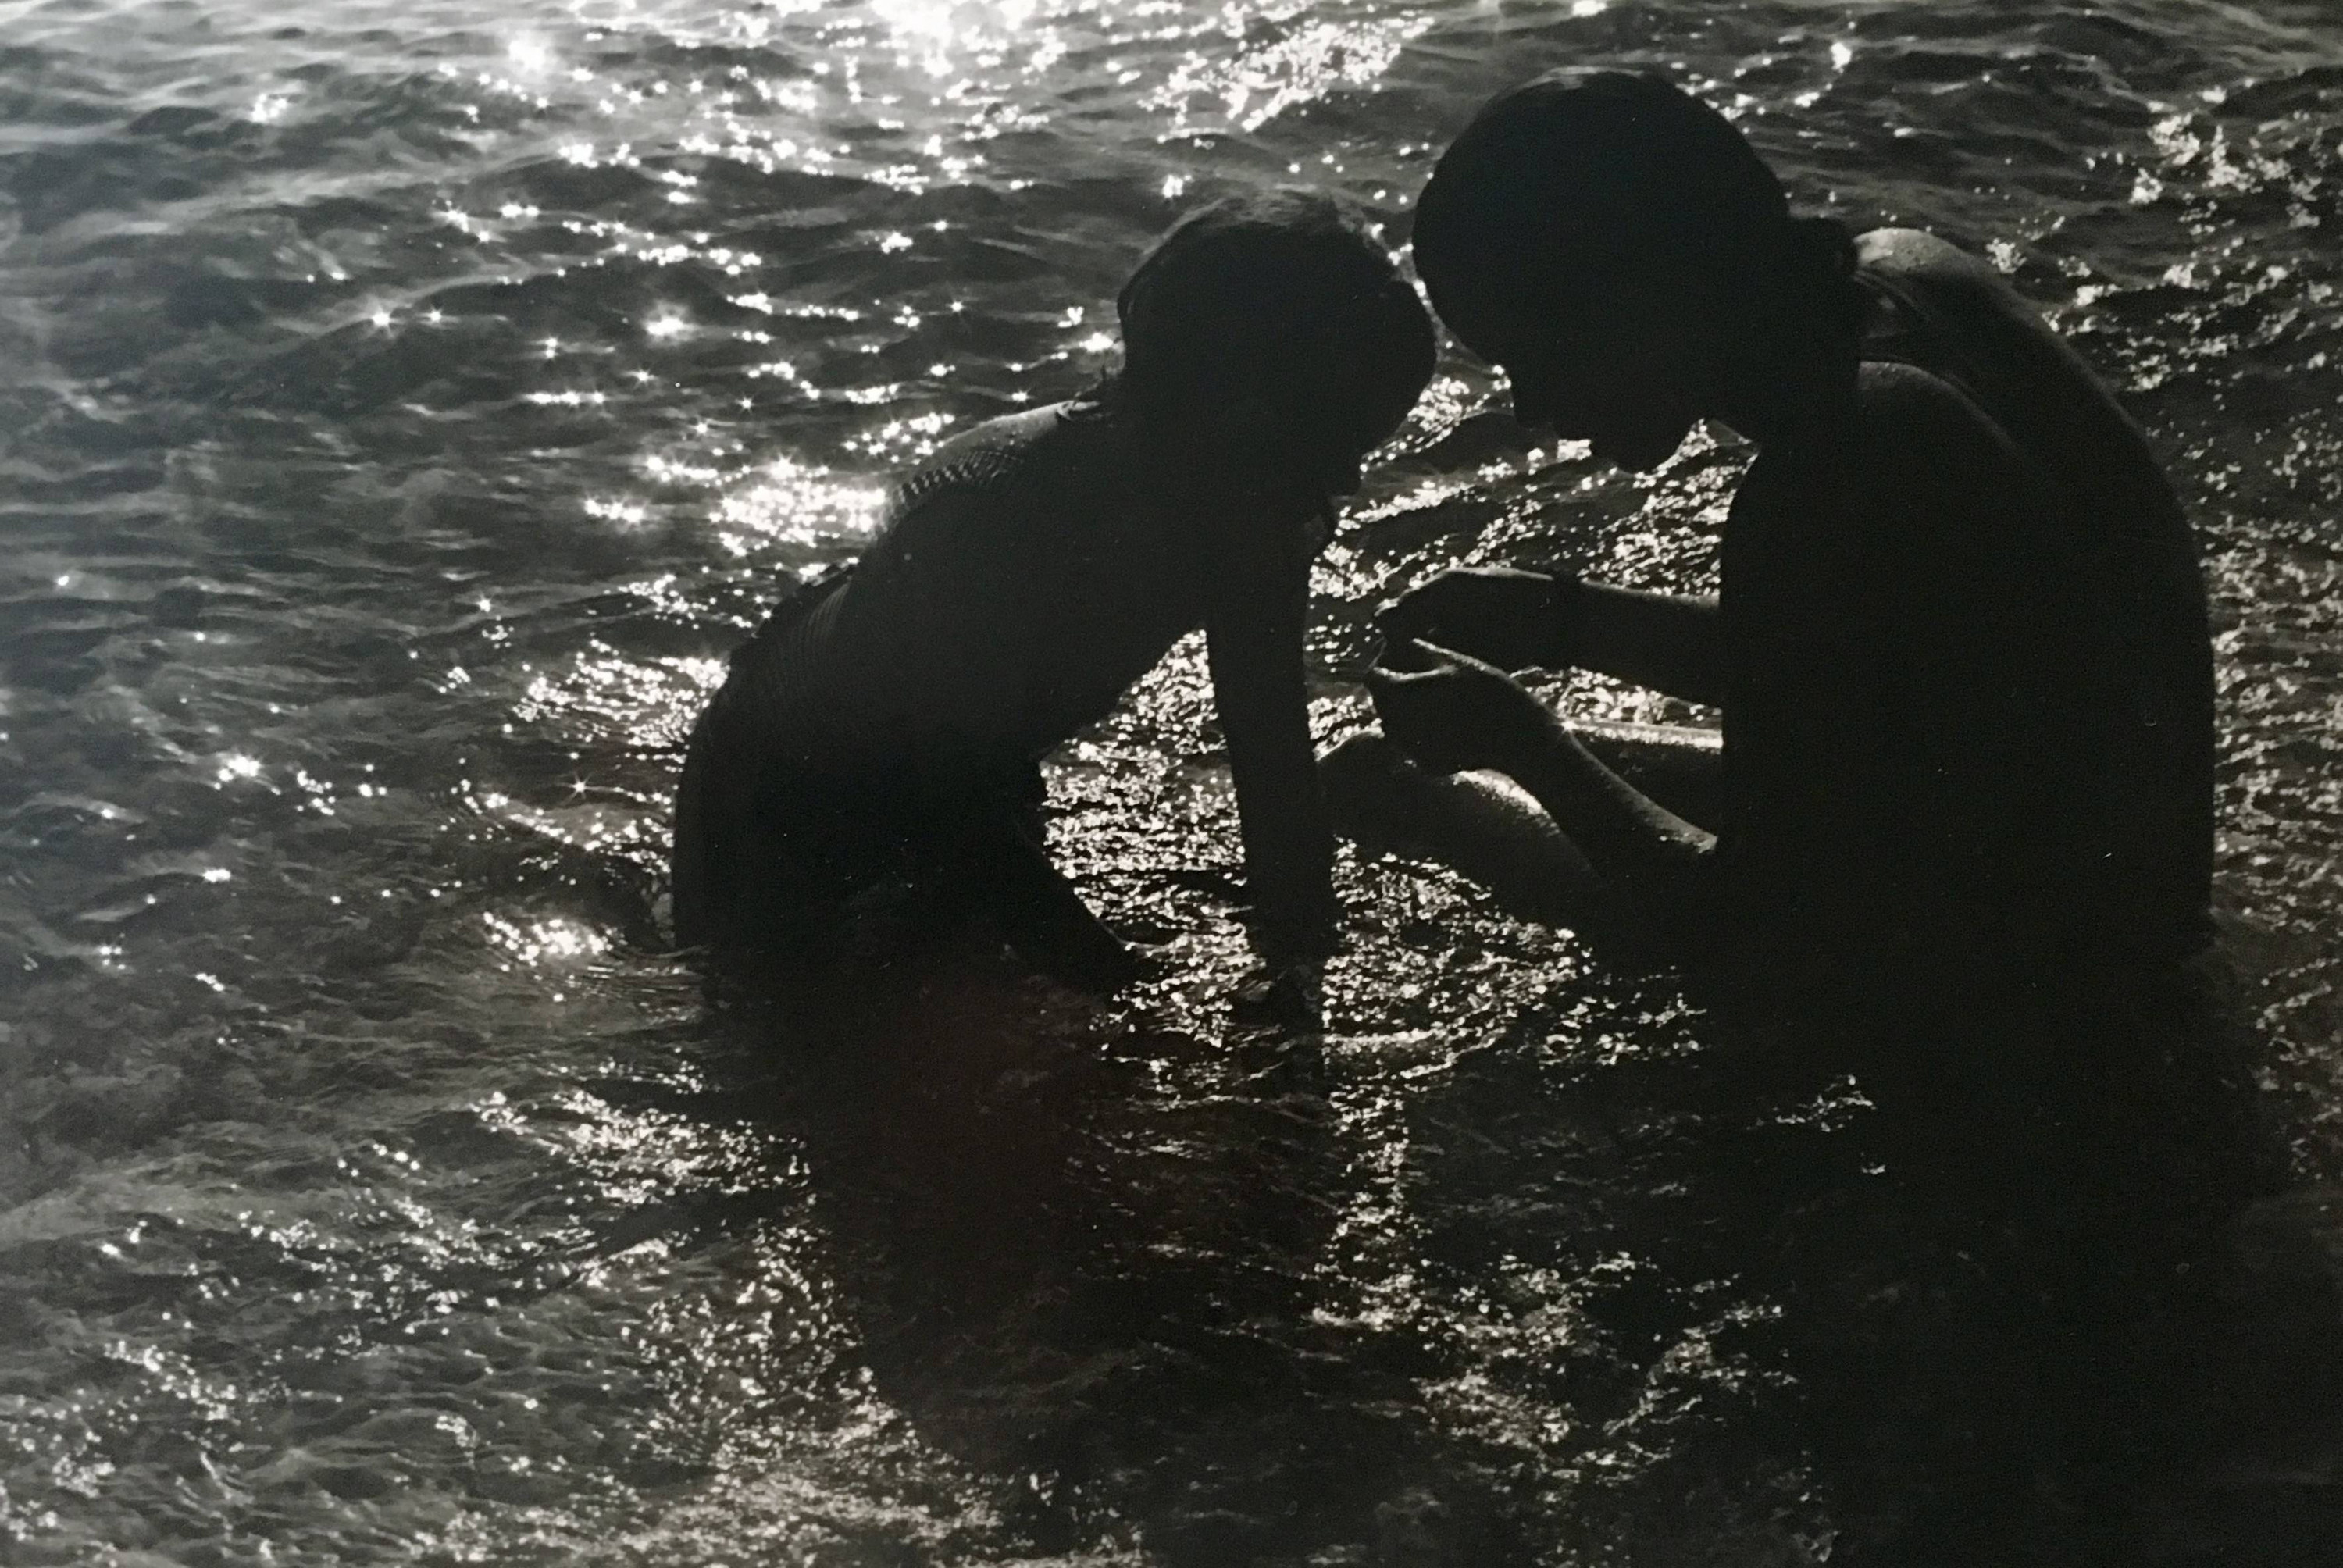 Two young girls at the waters edge examining something one of them is holding